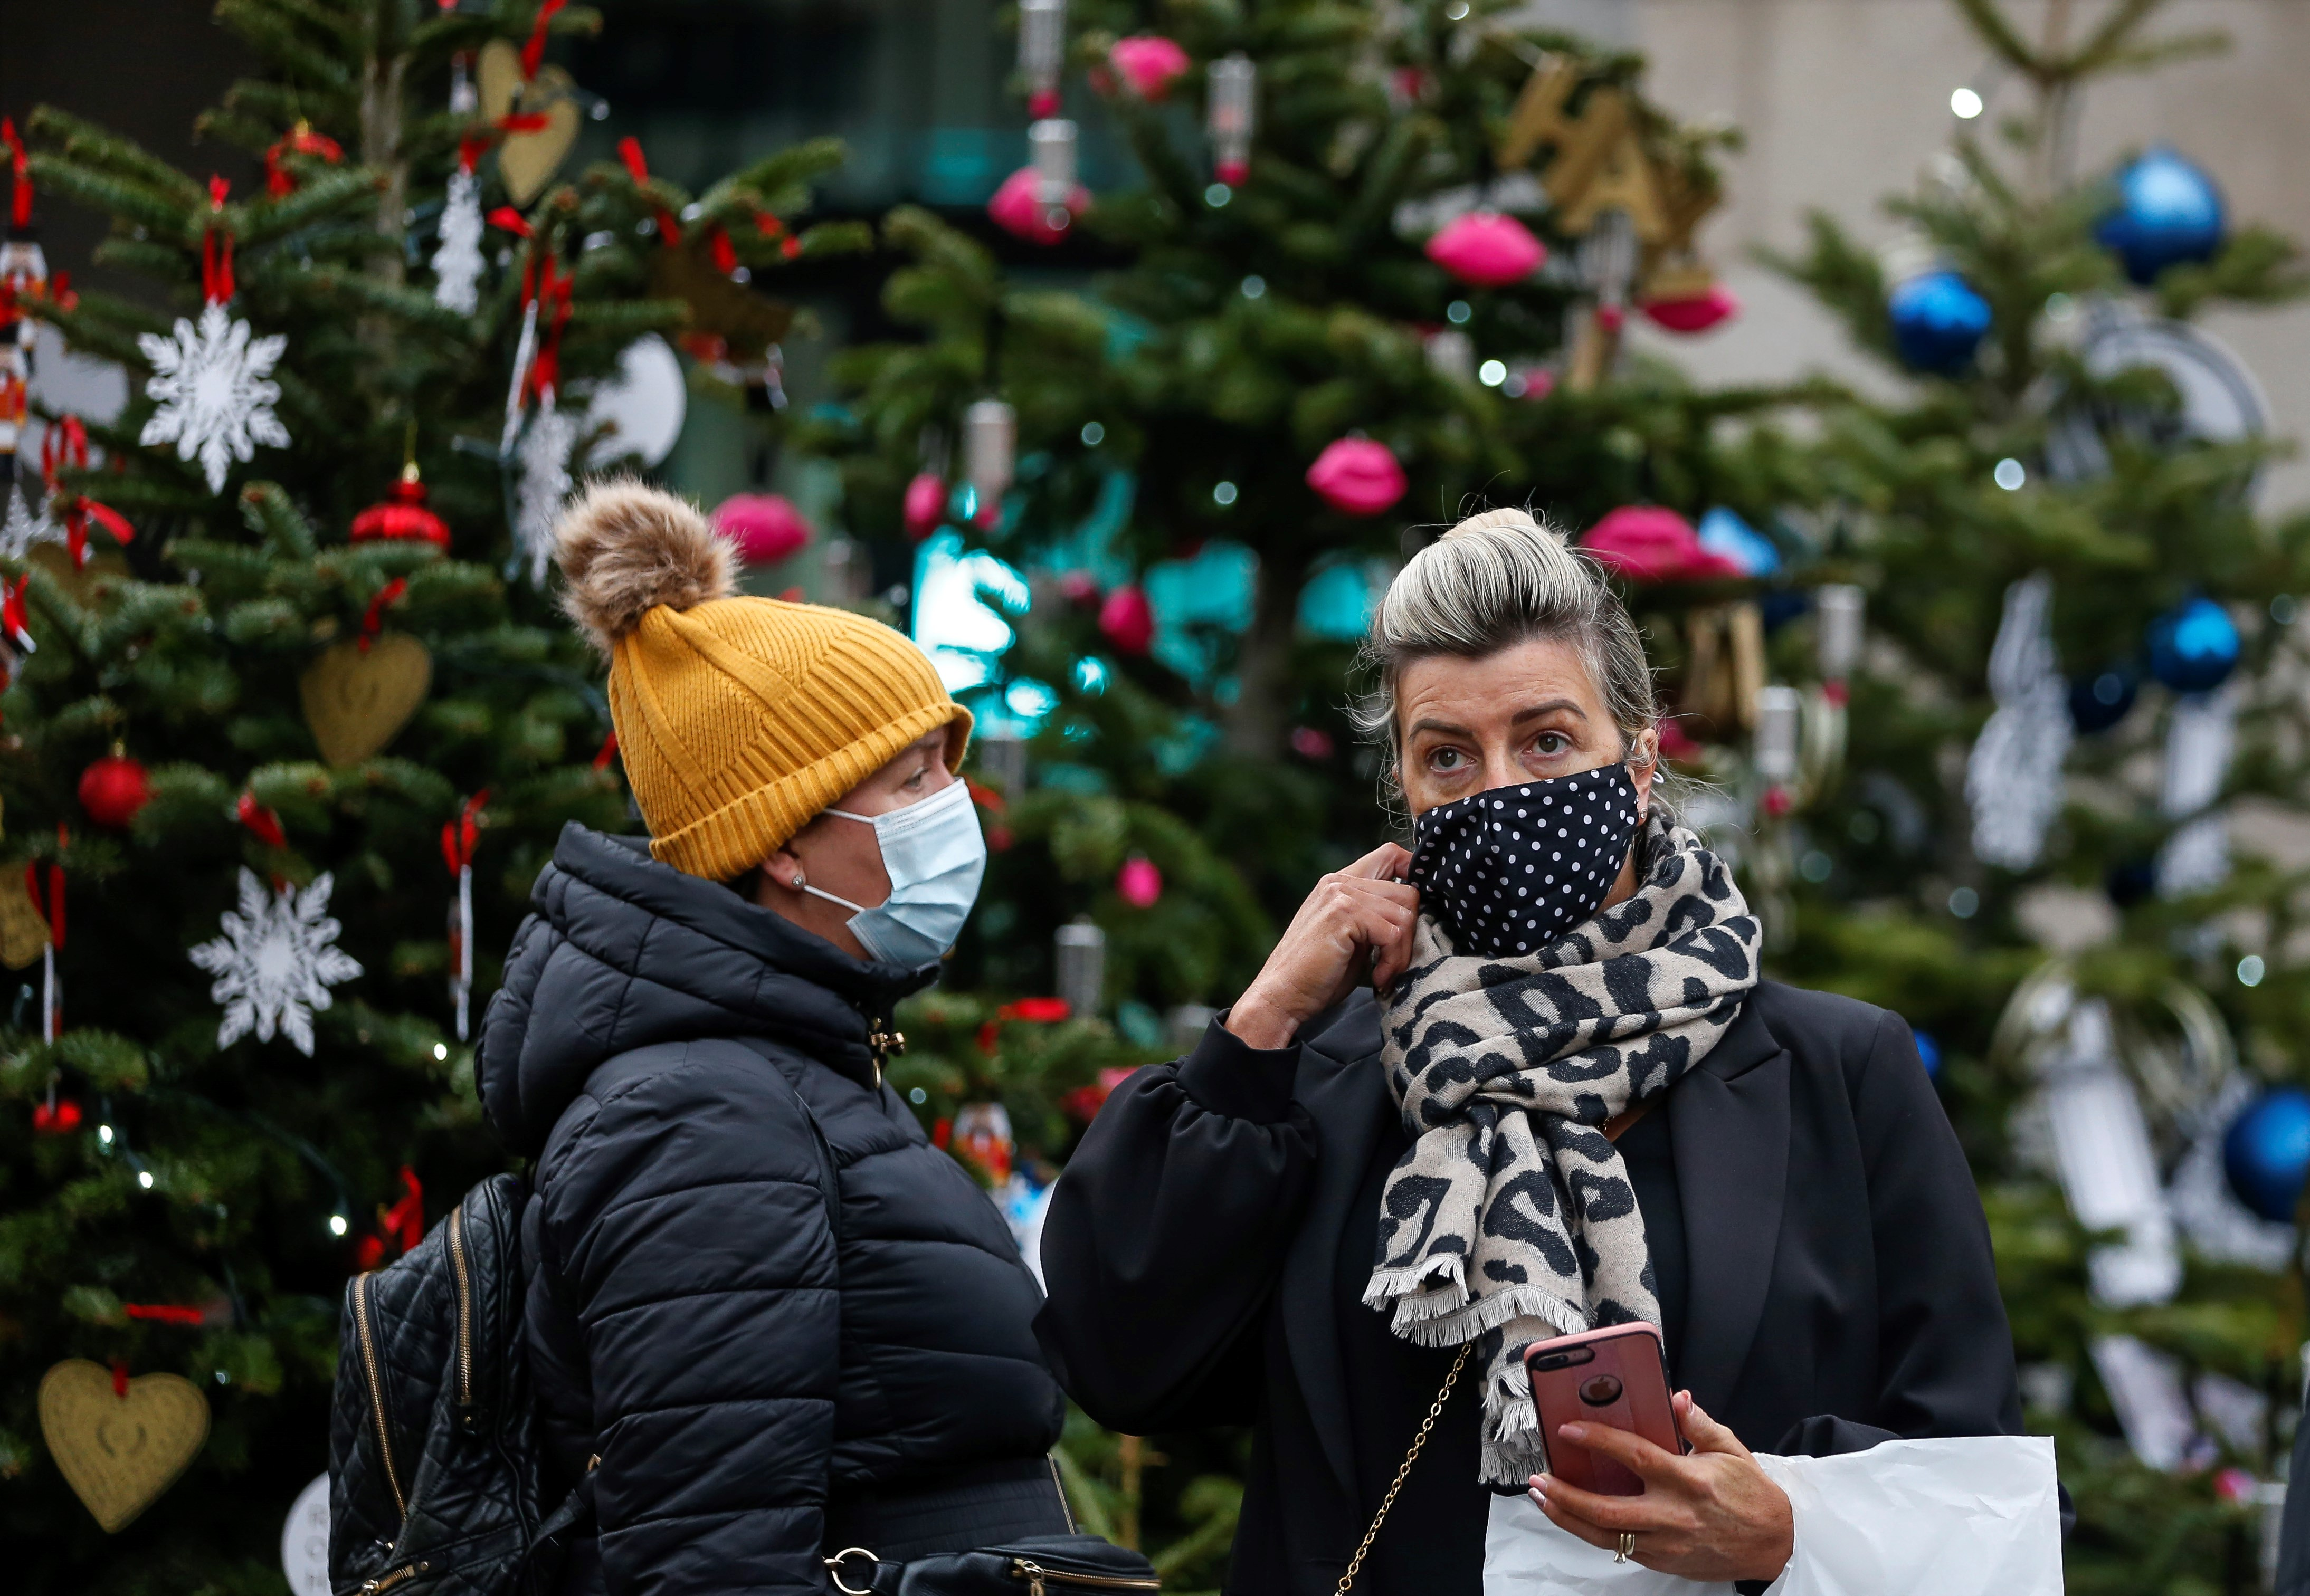 LONDON, Dec. 4, 2020 -- People wearing face masks stand next to Christmas trees in London, Britain, on Dec. 4, 2020. Another 16,298 people in Britain have tested positive for COVID-19, bringing the total number of coronavirus cases in the country to 1,690,432, according to official figures released Friday. The coronavirus-related deaths in Britain rose by 504 to 60,617, the data showed. (Photo by Han Yan/Xinhua via Getty) (Xinhua/Han Yan via Getty Images)